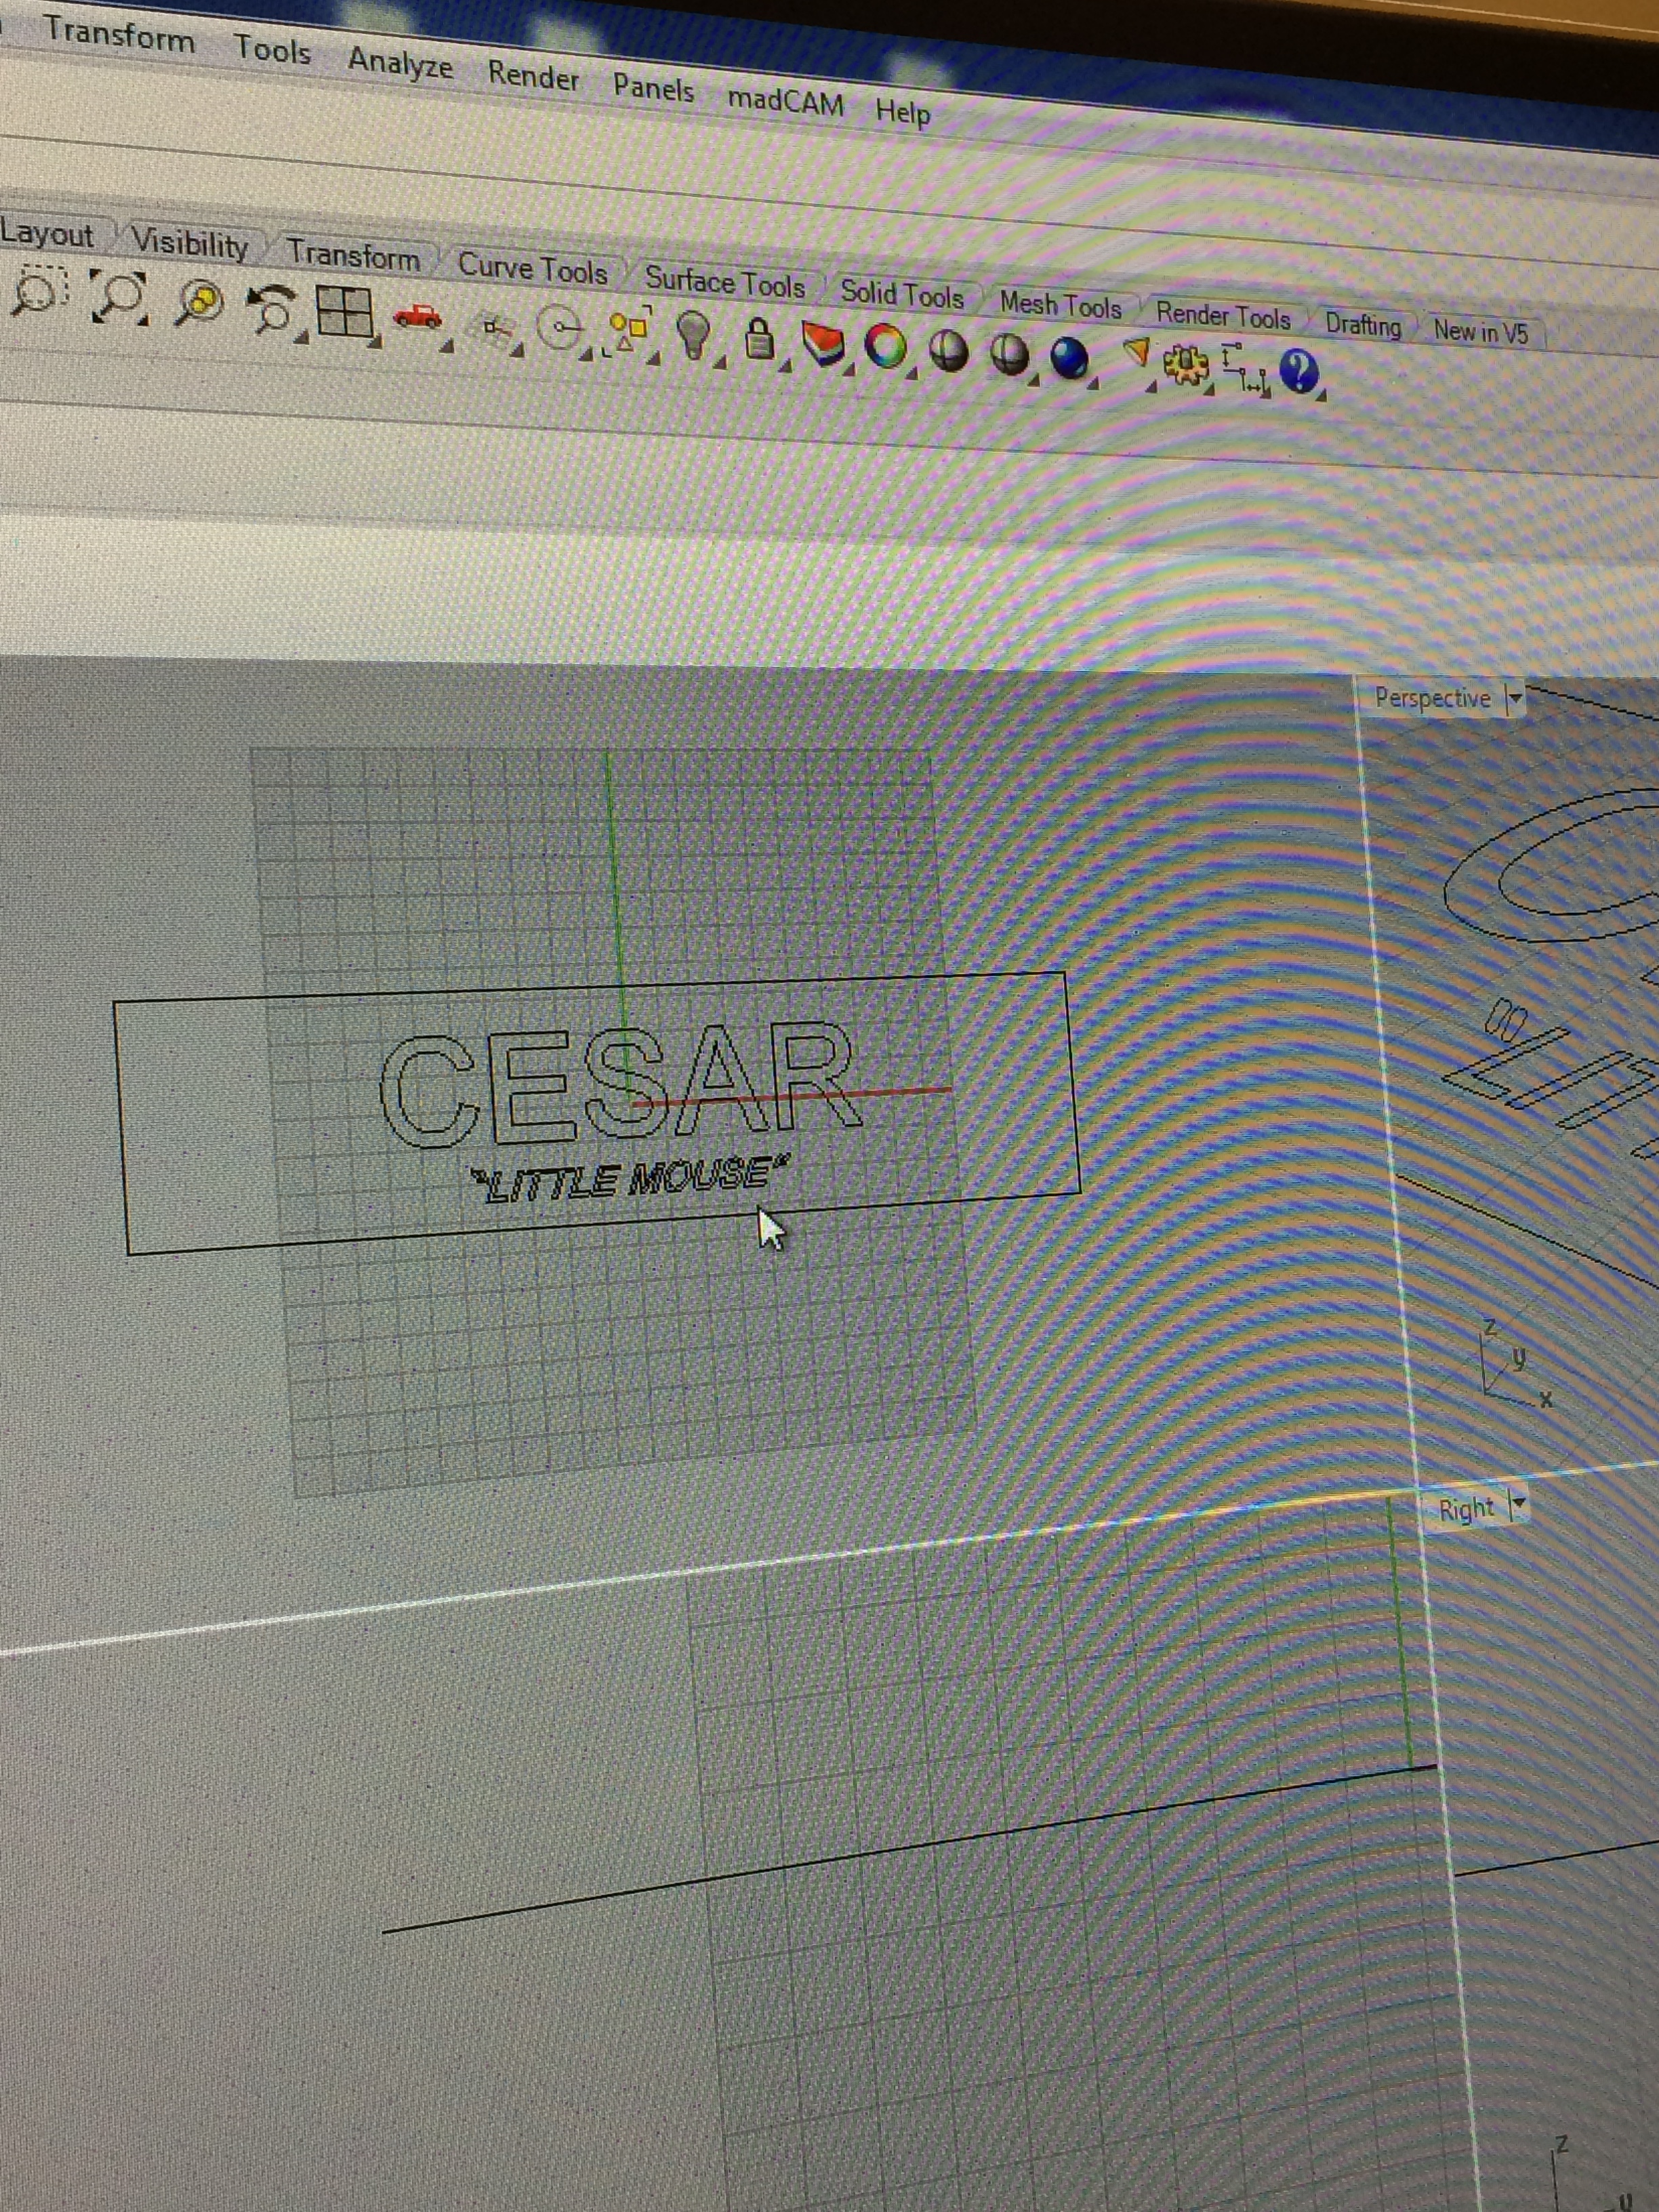 The CAD image of Cesar's inscription